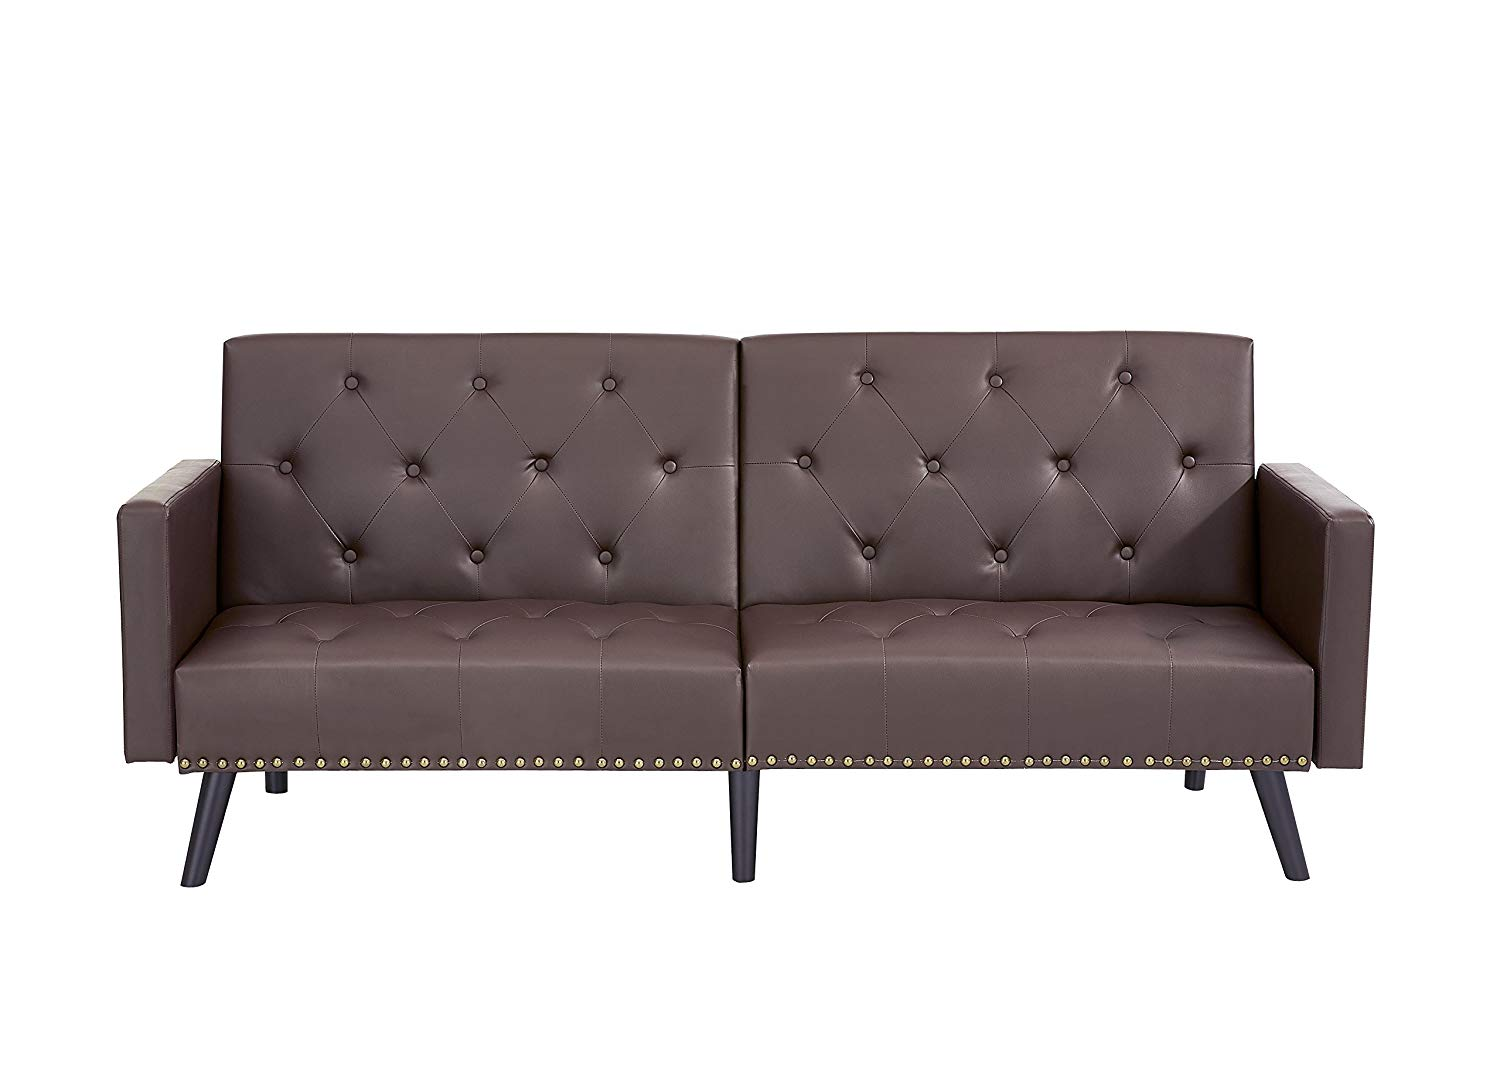 atherton home soho convertible futon sofa bed and lounger tangerine cheap manhattan find get quotations naomi tufted split back espresso faux leather